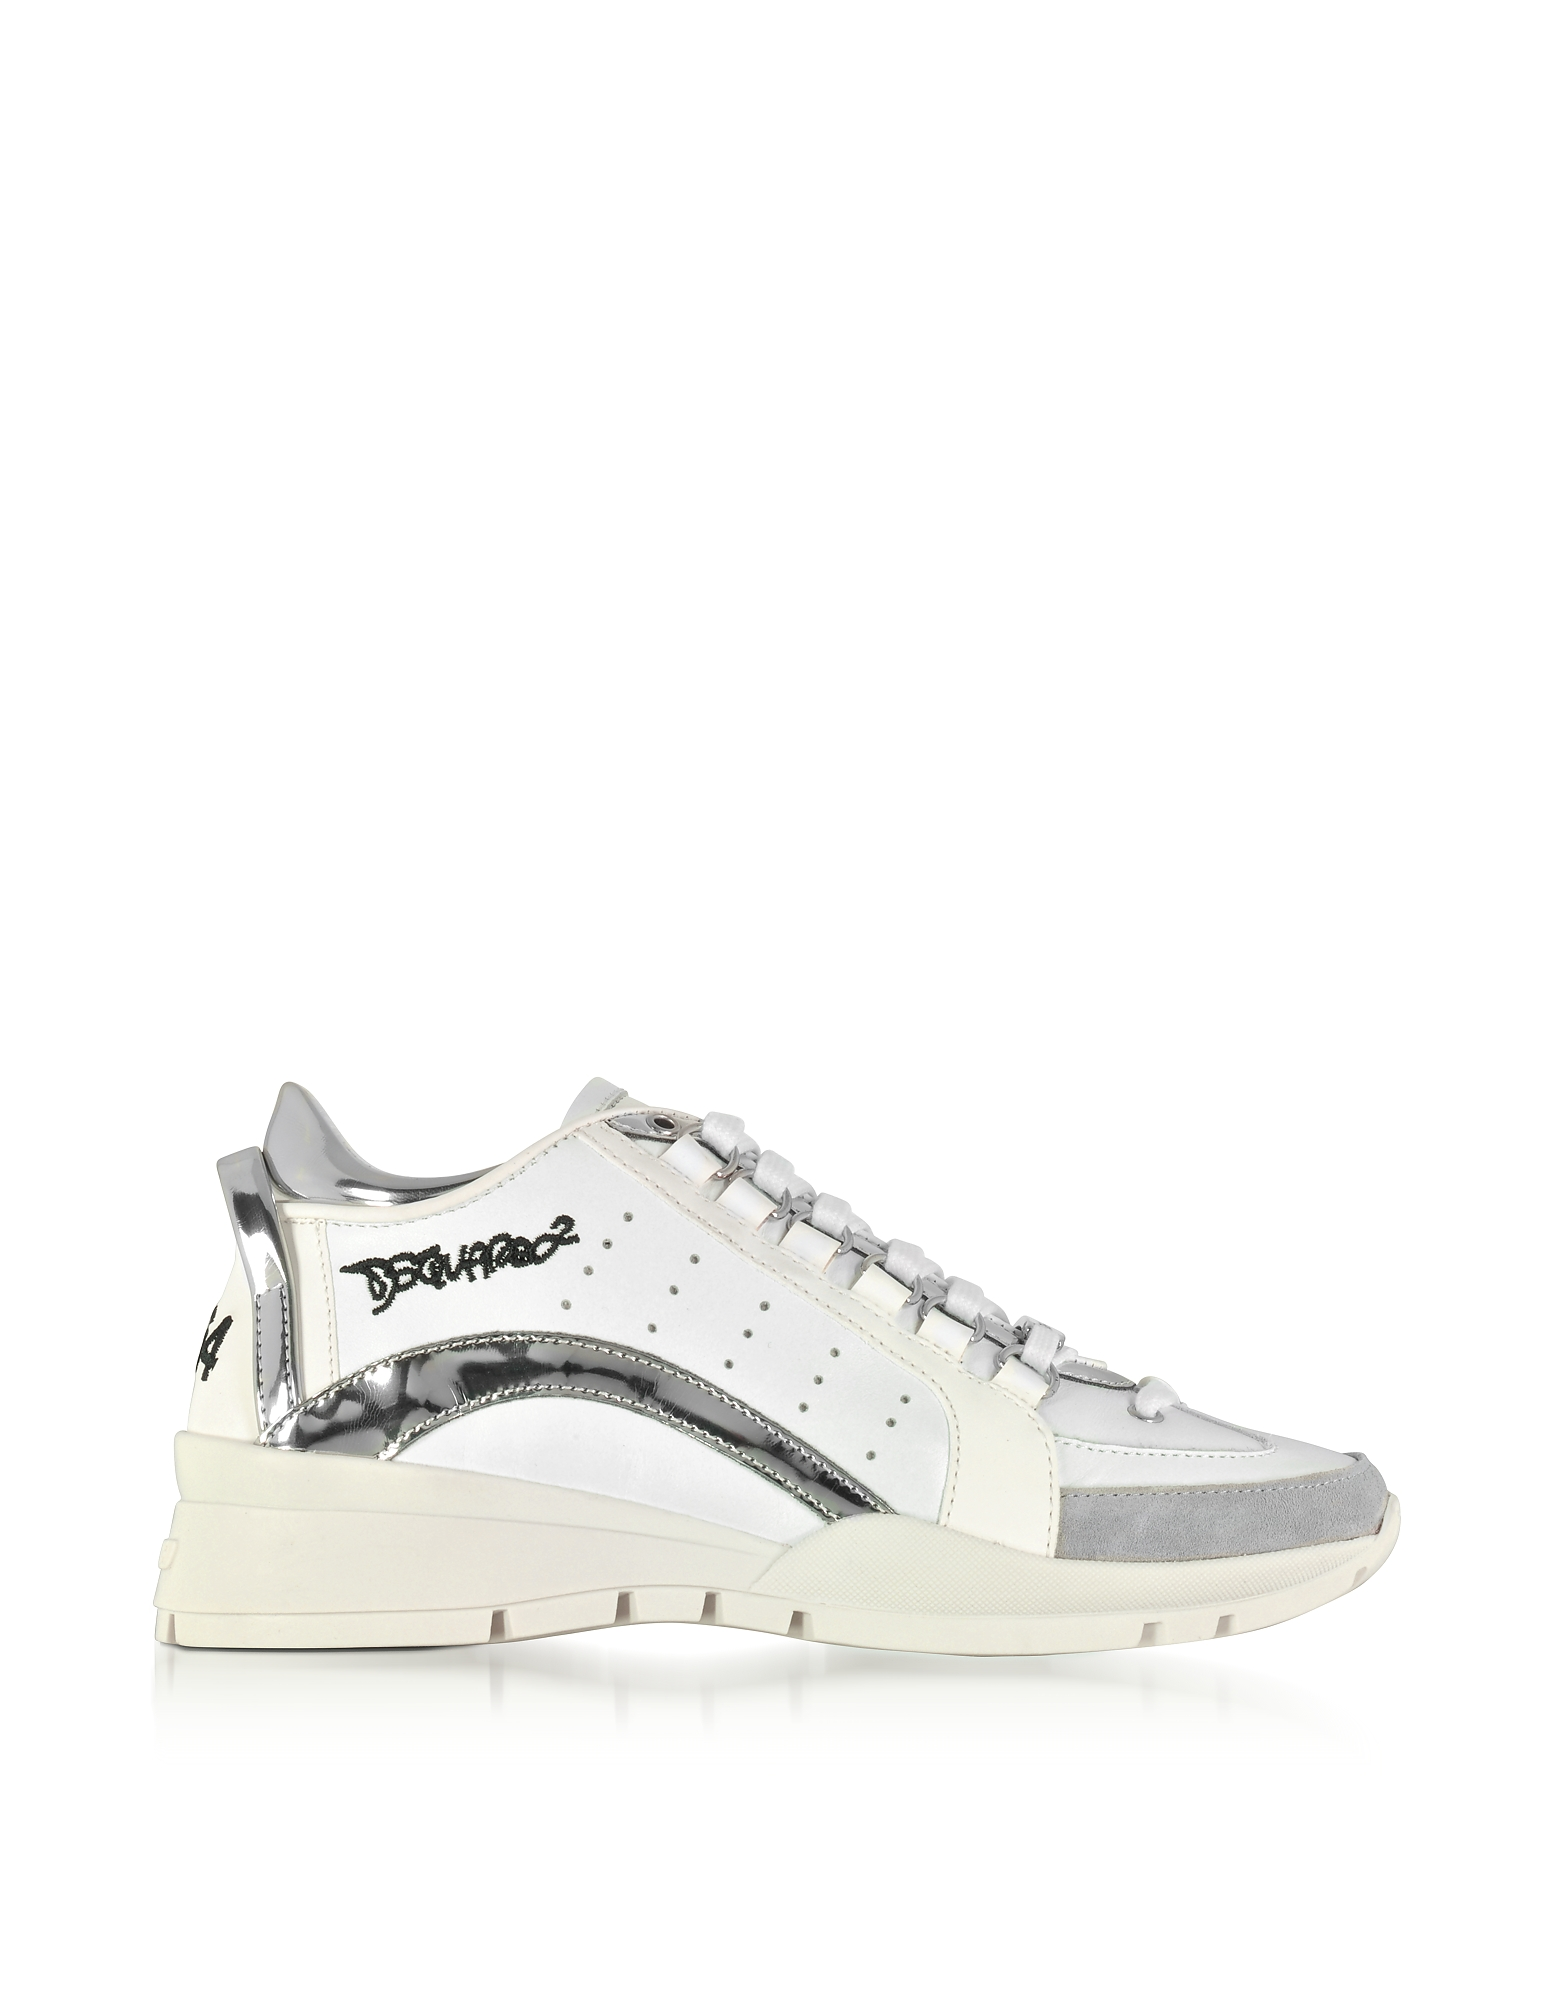 DSquared2 Shoes, White and Silver Mirror Leather Women's Sneakers